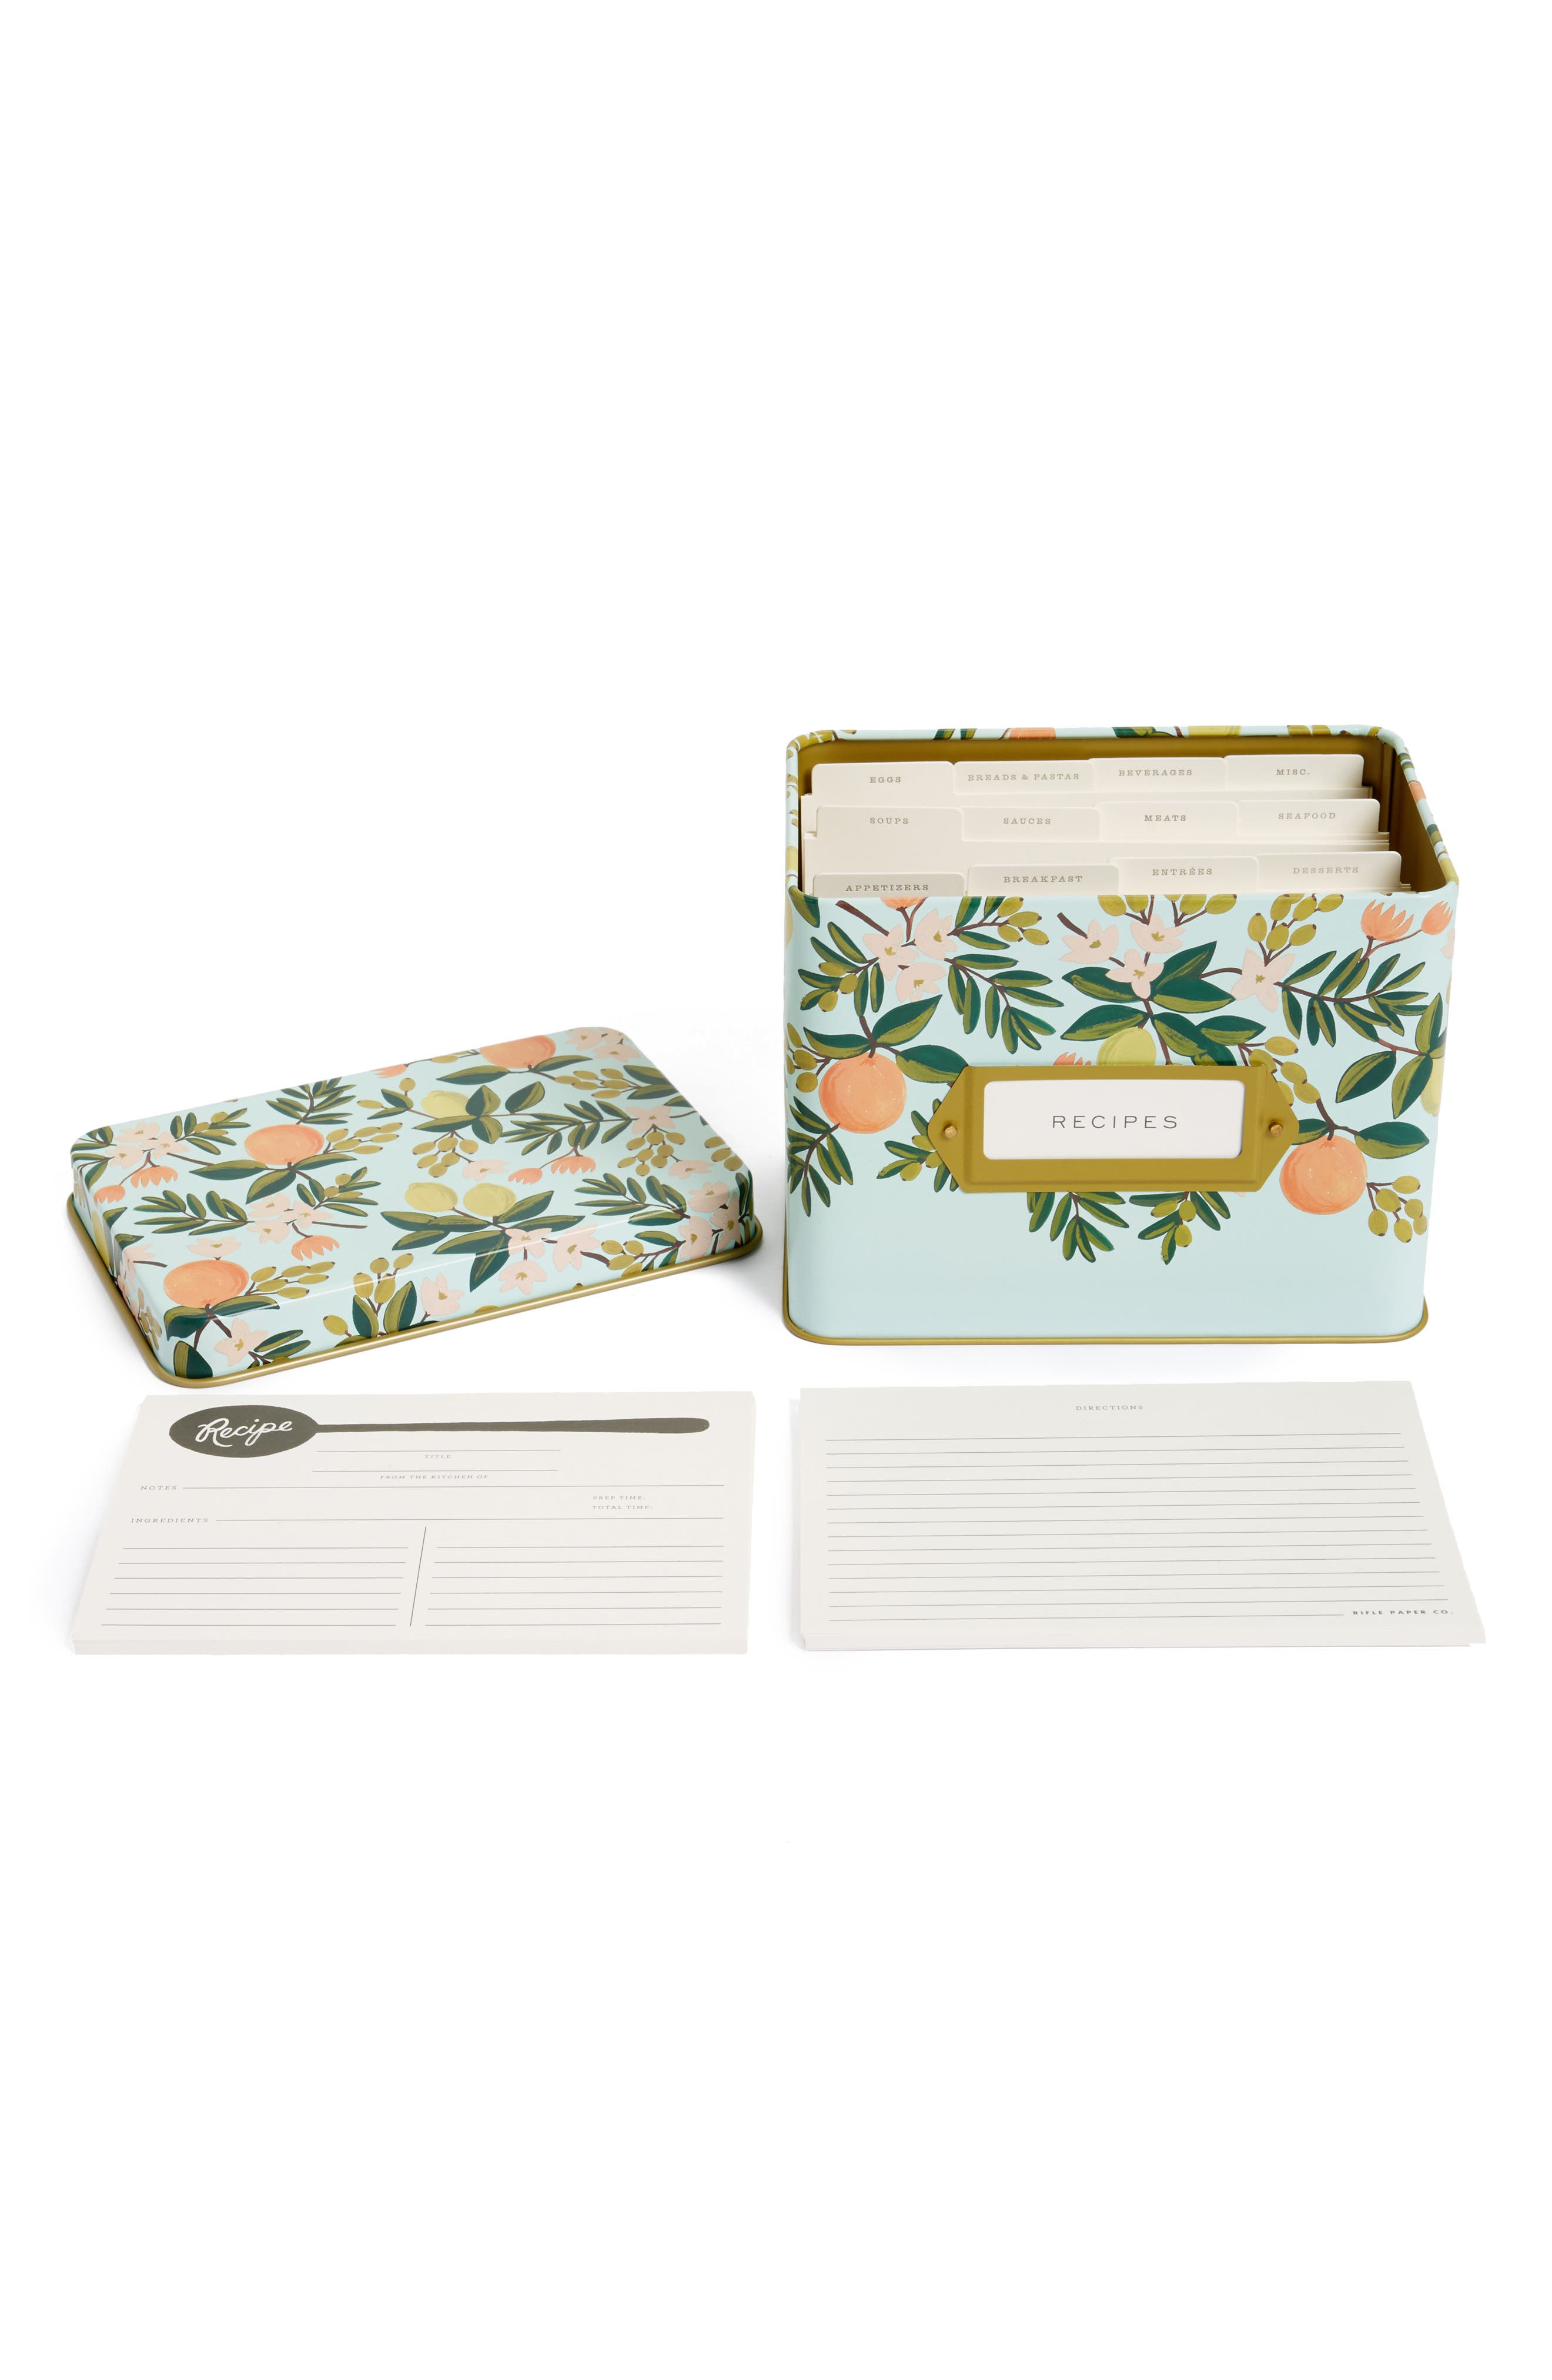 Alternate Image 1 Selected - Rifle Paper Co. Citrus Floral Recipe Tin